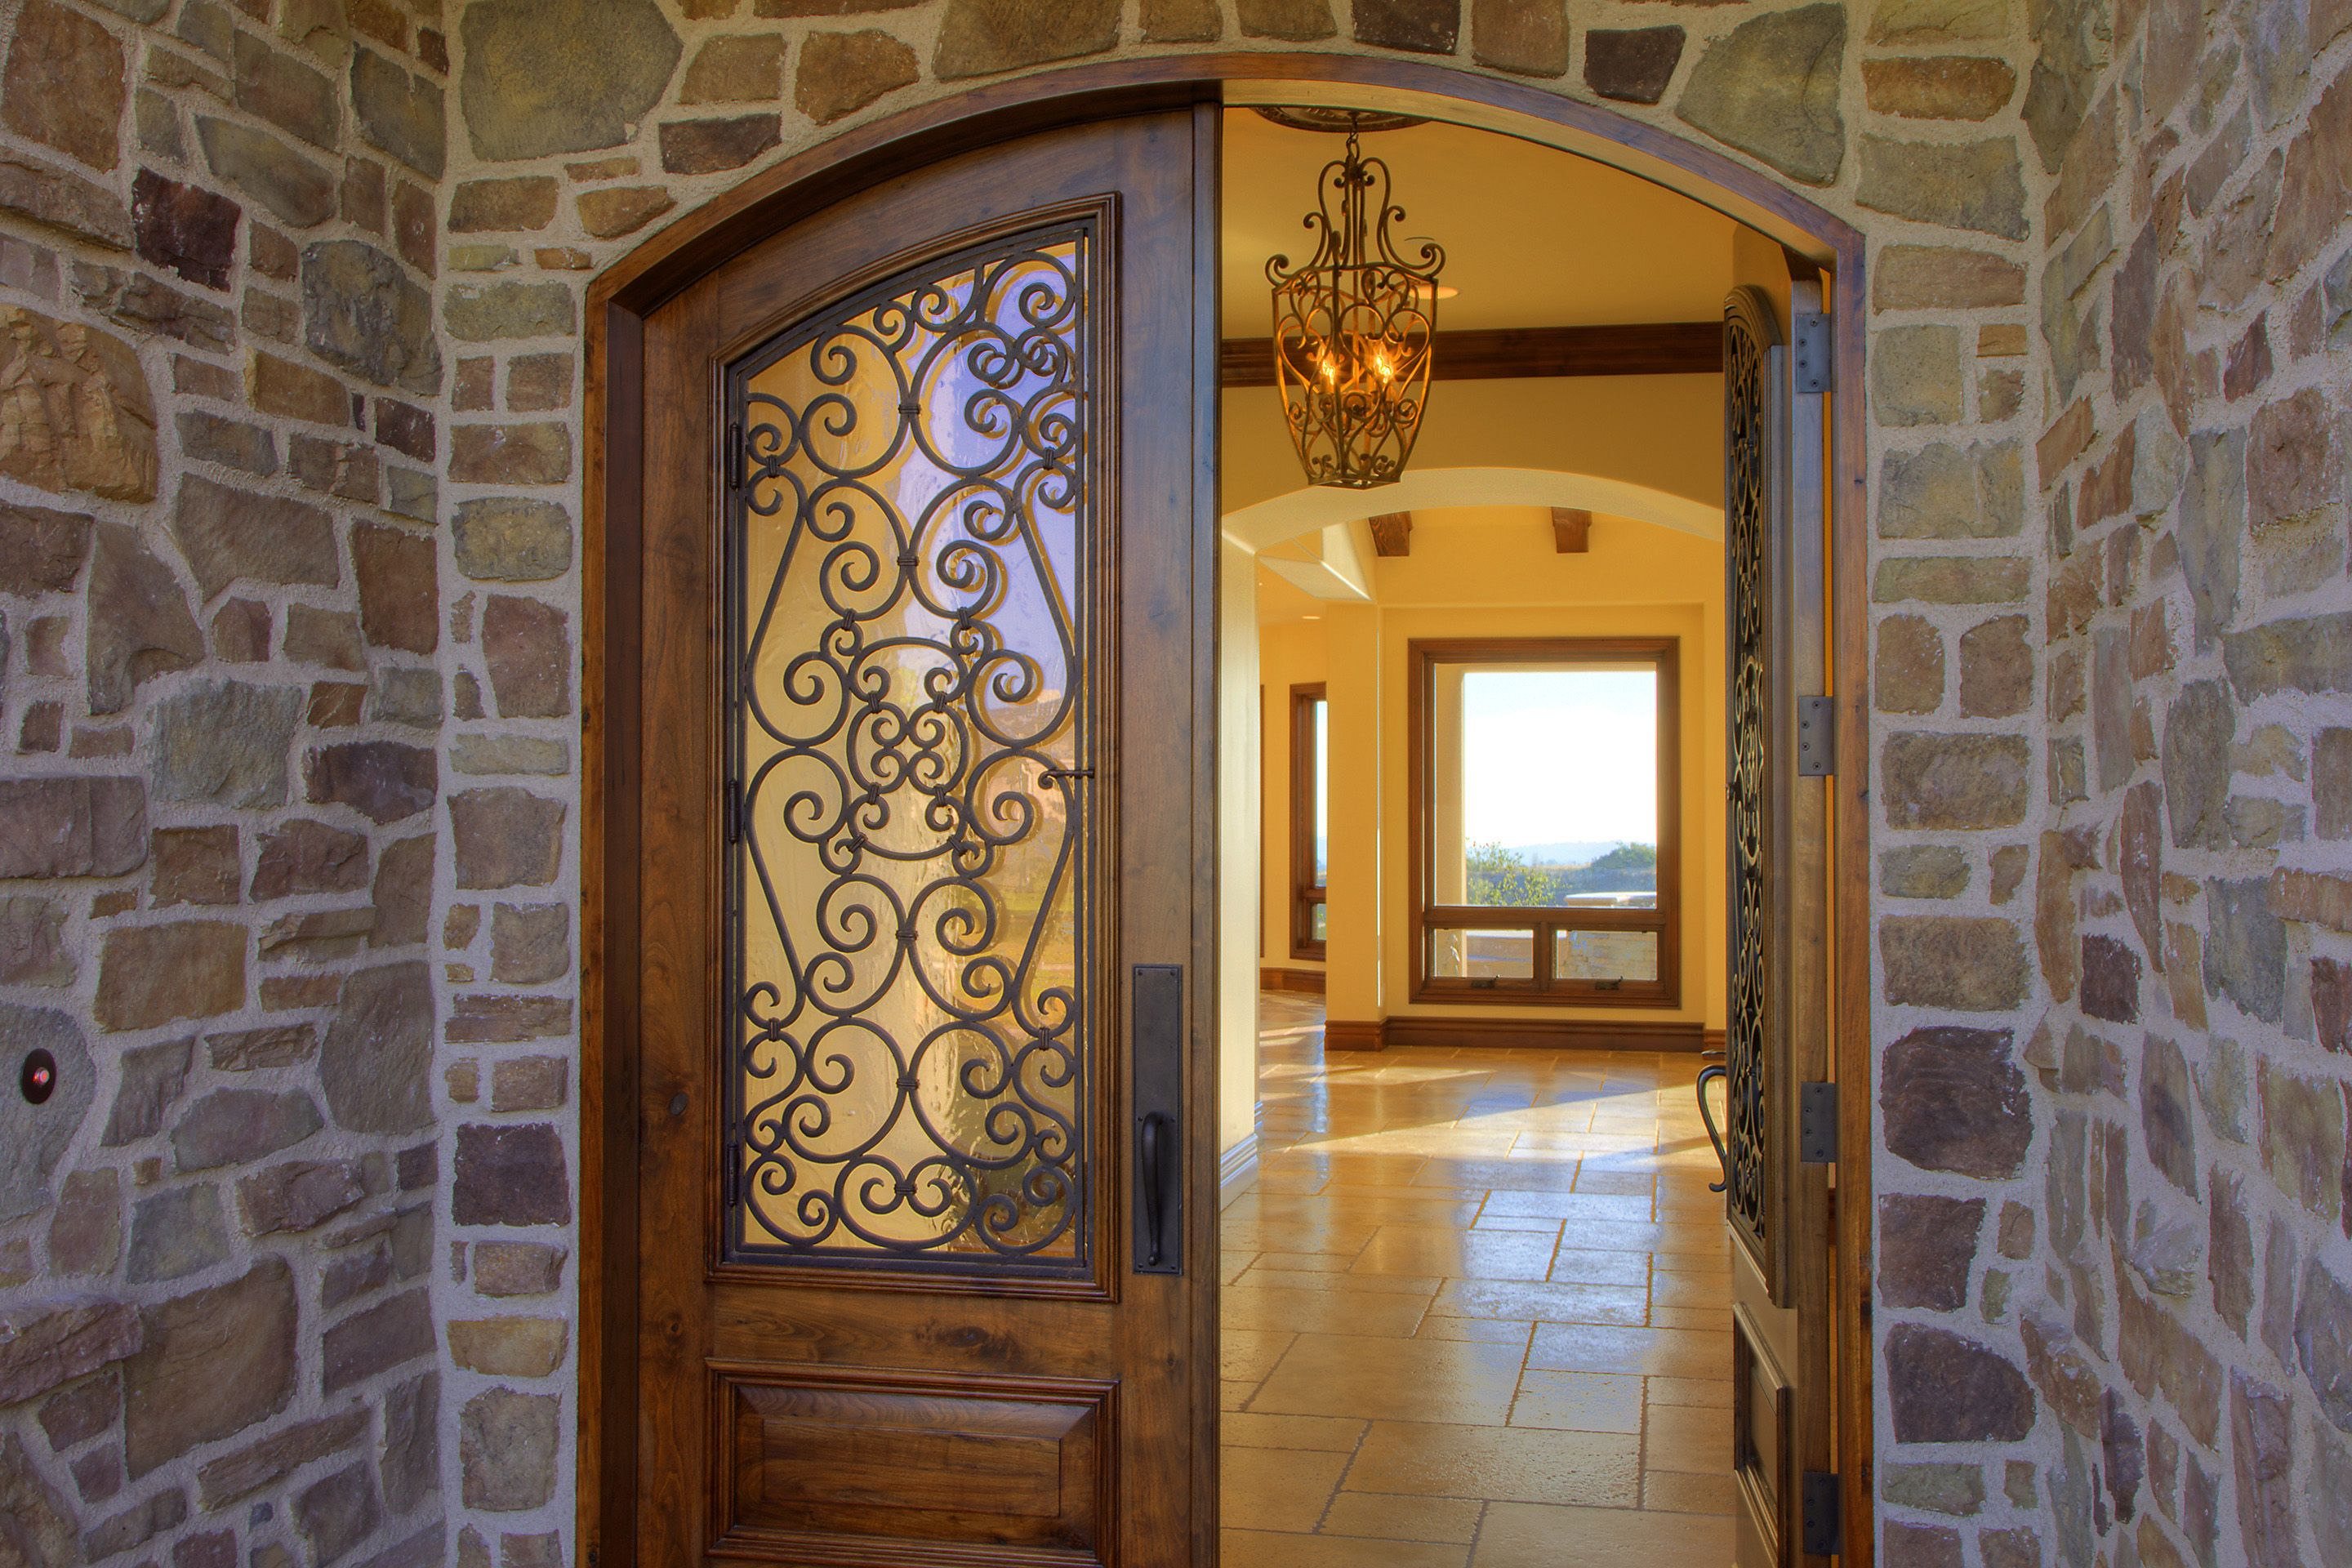 Solid Wood Double Front Entry Door With Window Based Top And Wrought Iron  Design.